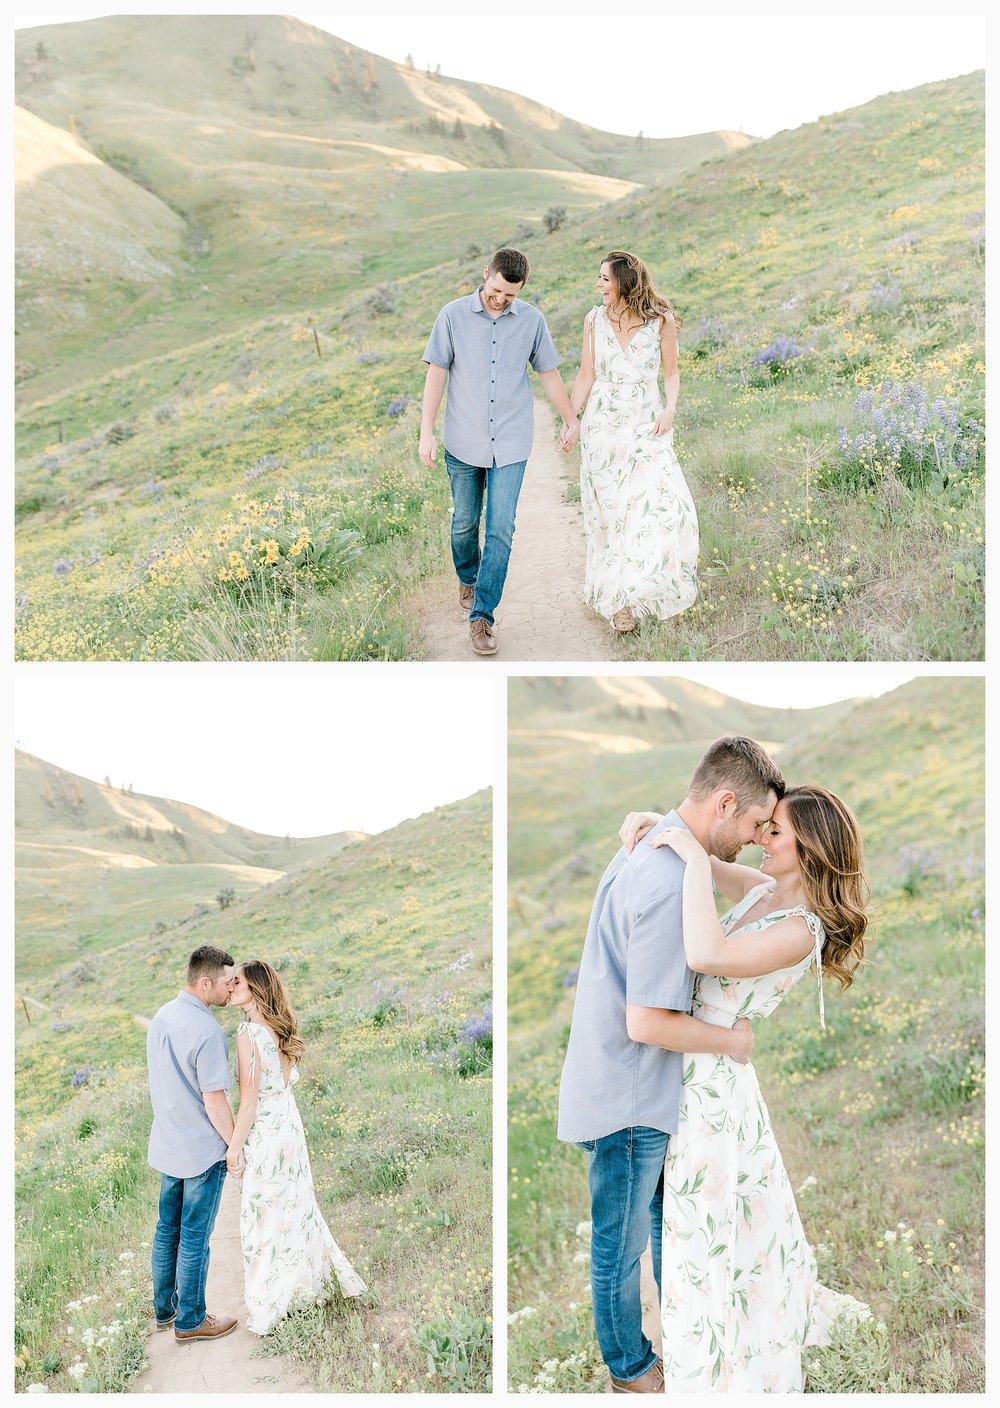 Engagement session amongst the wildflowers in Wenatchee, Washington | Engagement Session Outfit Inspiration for Wedding Photography with Emma Rose Company | Light and Airy PNW Photographer, Seattle Bride_0013.jpg